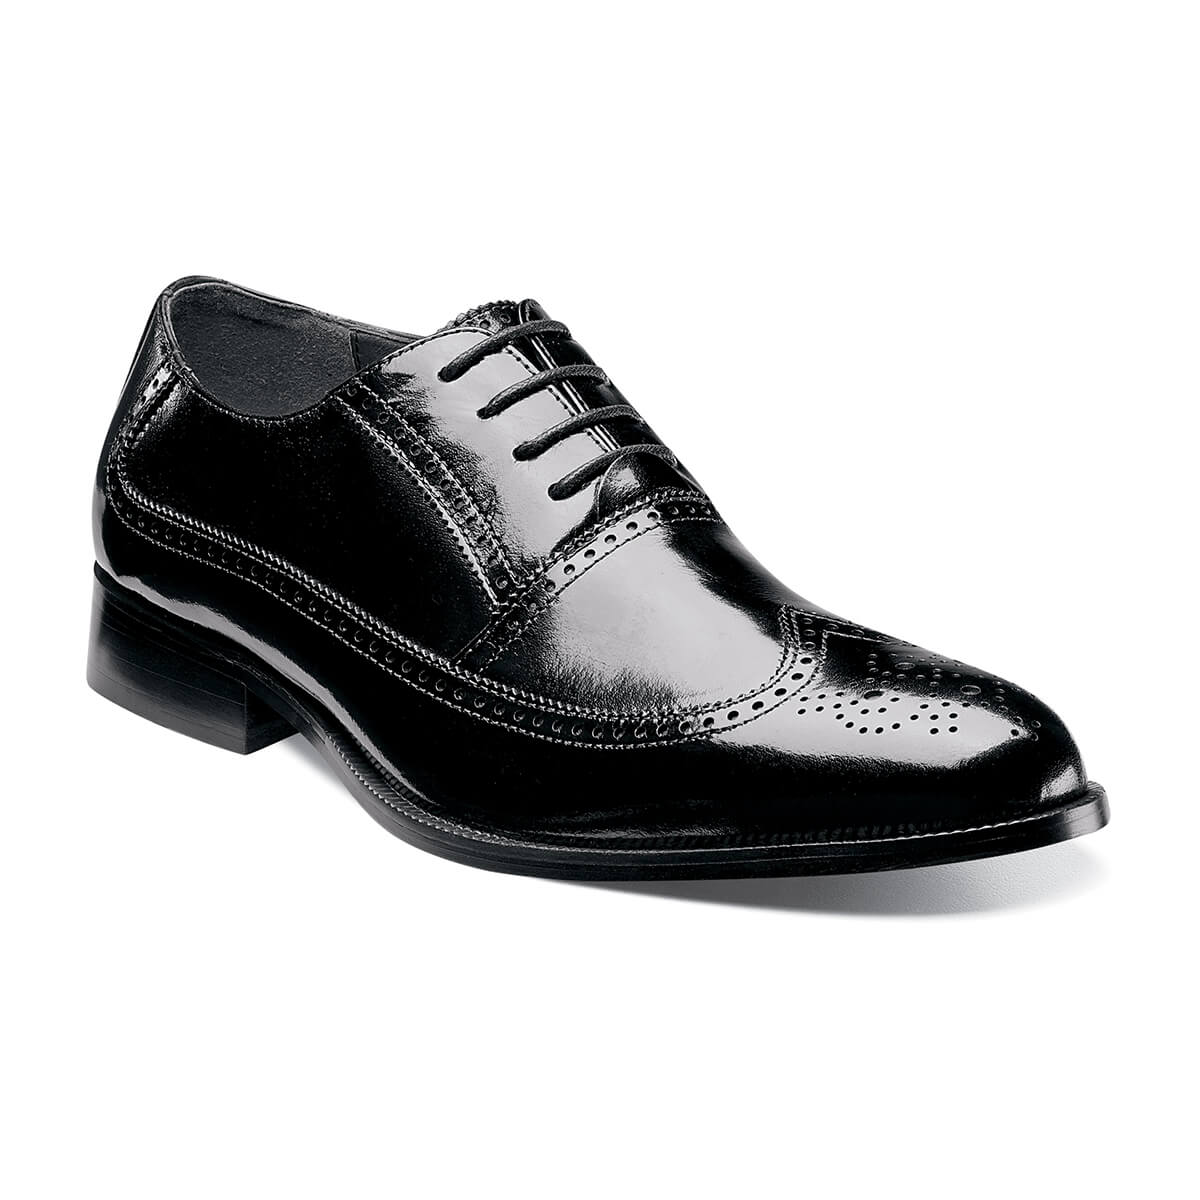 Sawyer Wingtip Oxford Shoes - Dapperfam.com